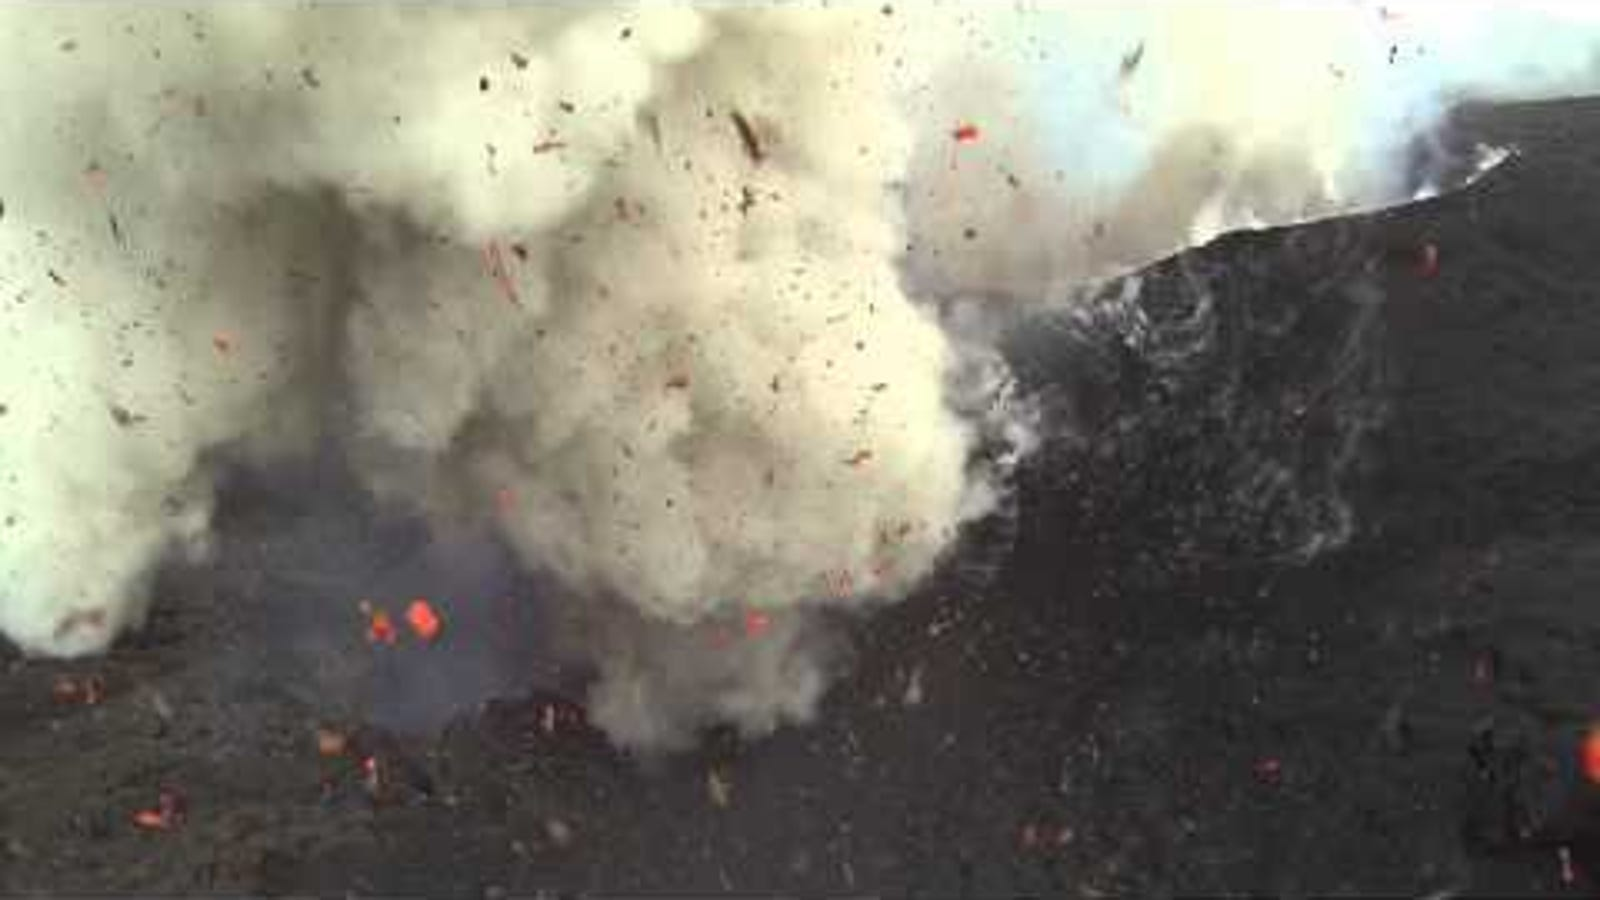 This Drone Footage of an Erupting Volcano Is Absolutely Nuts